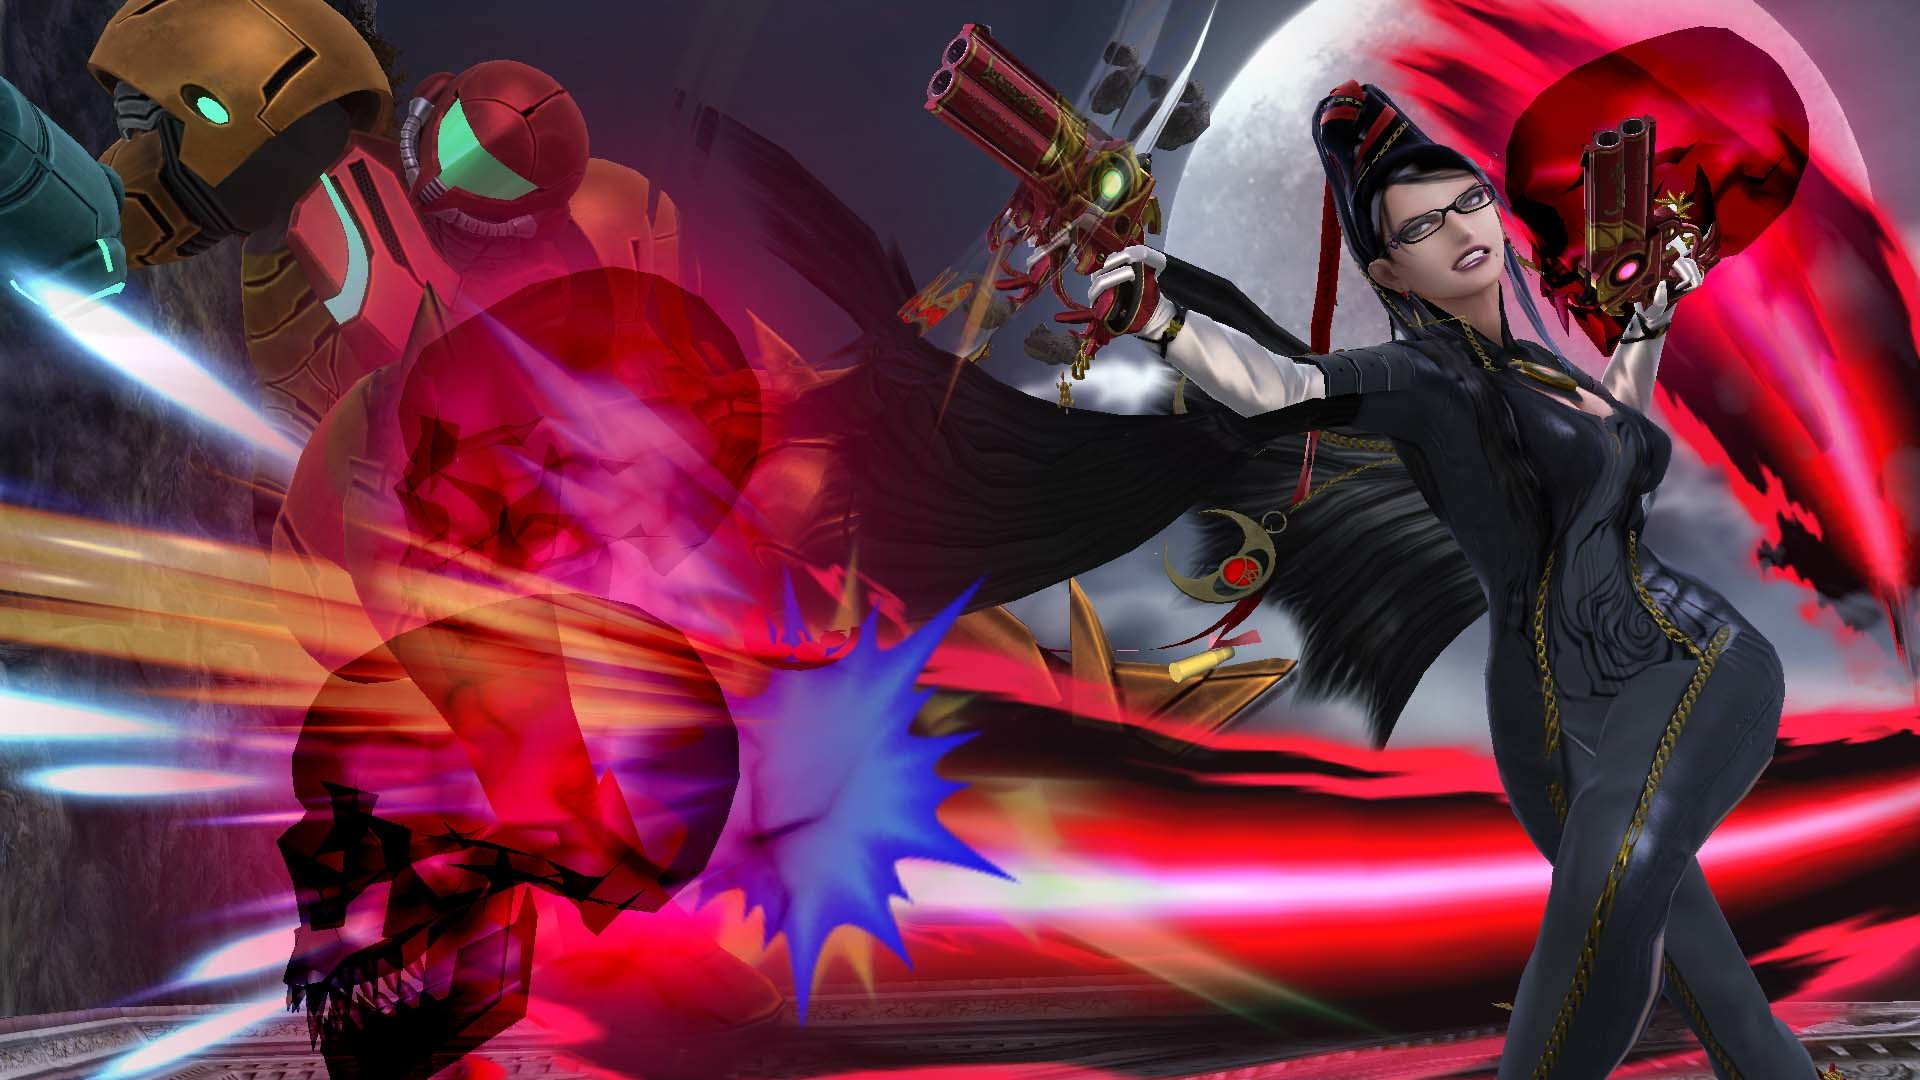 1920x1080 Smash Bros for Wii U/3DS: Bayonetta and Corrin to be released Feb. 4th |  Page 6 | NeoGAF